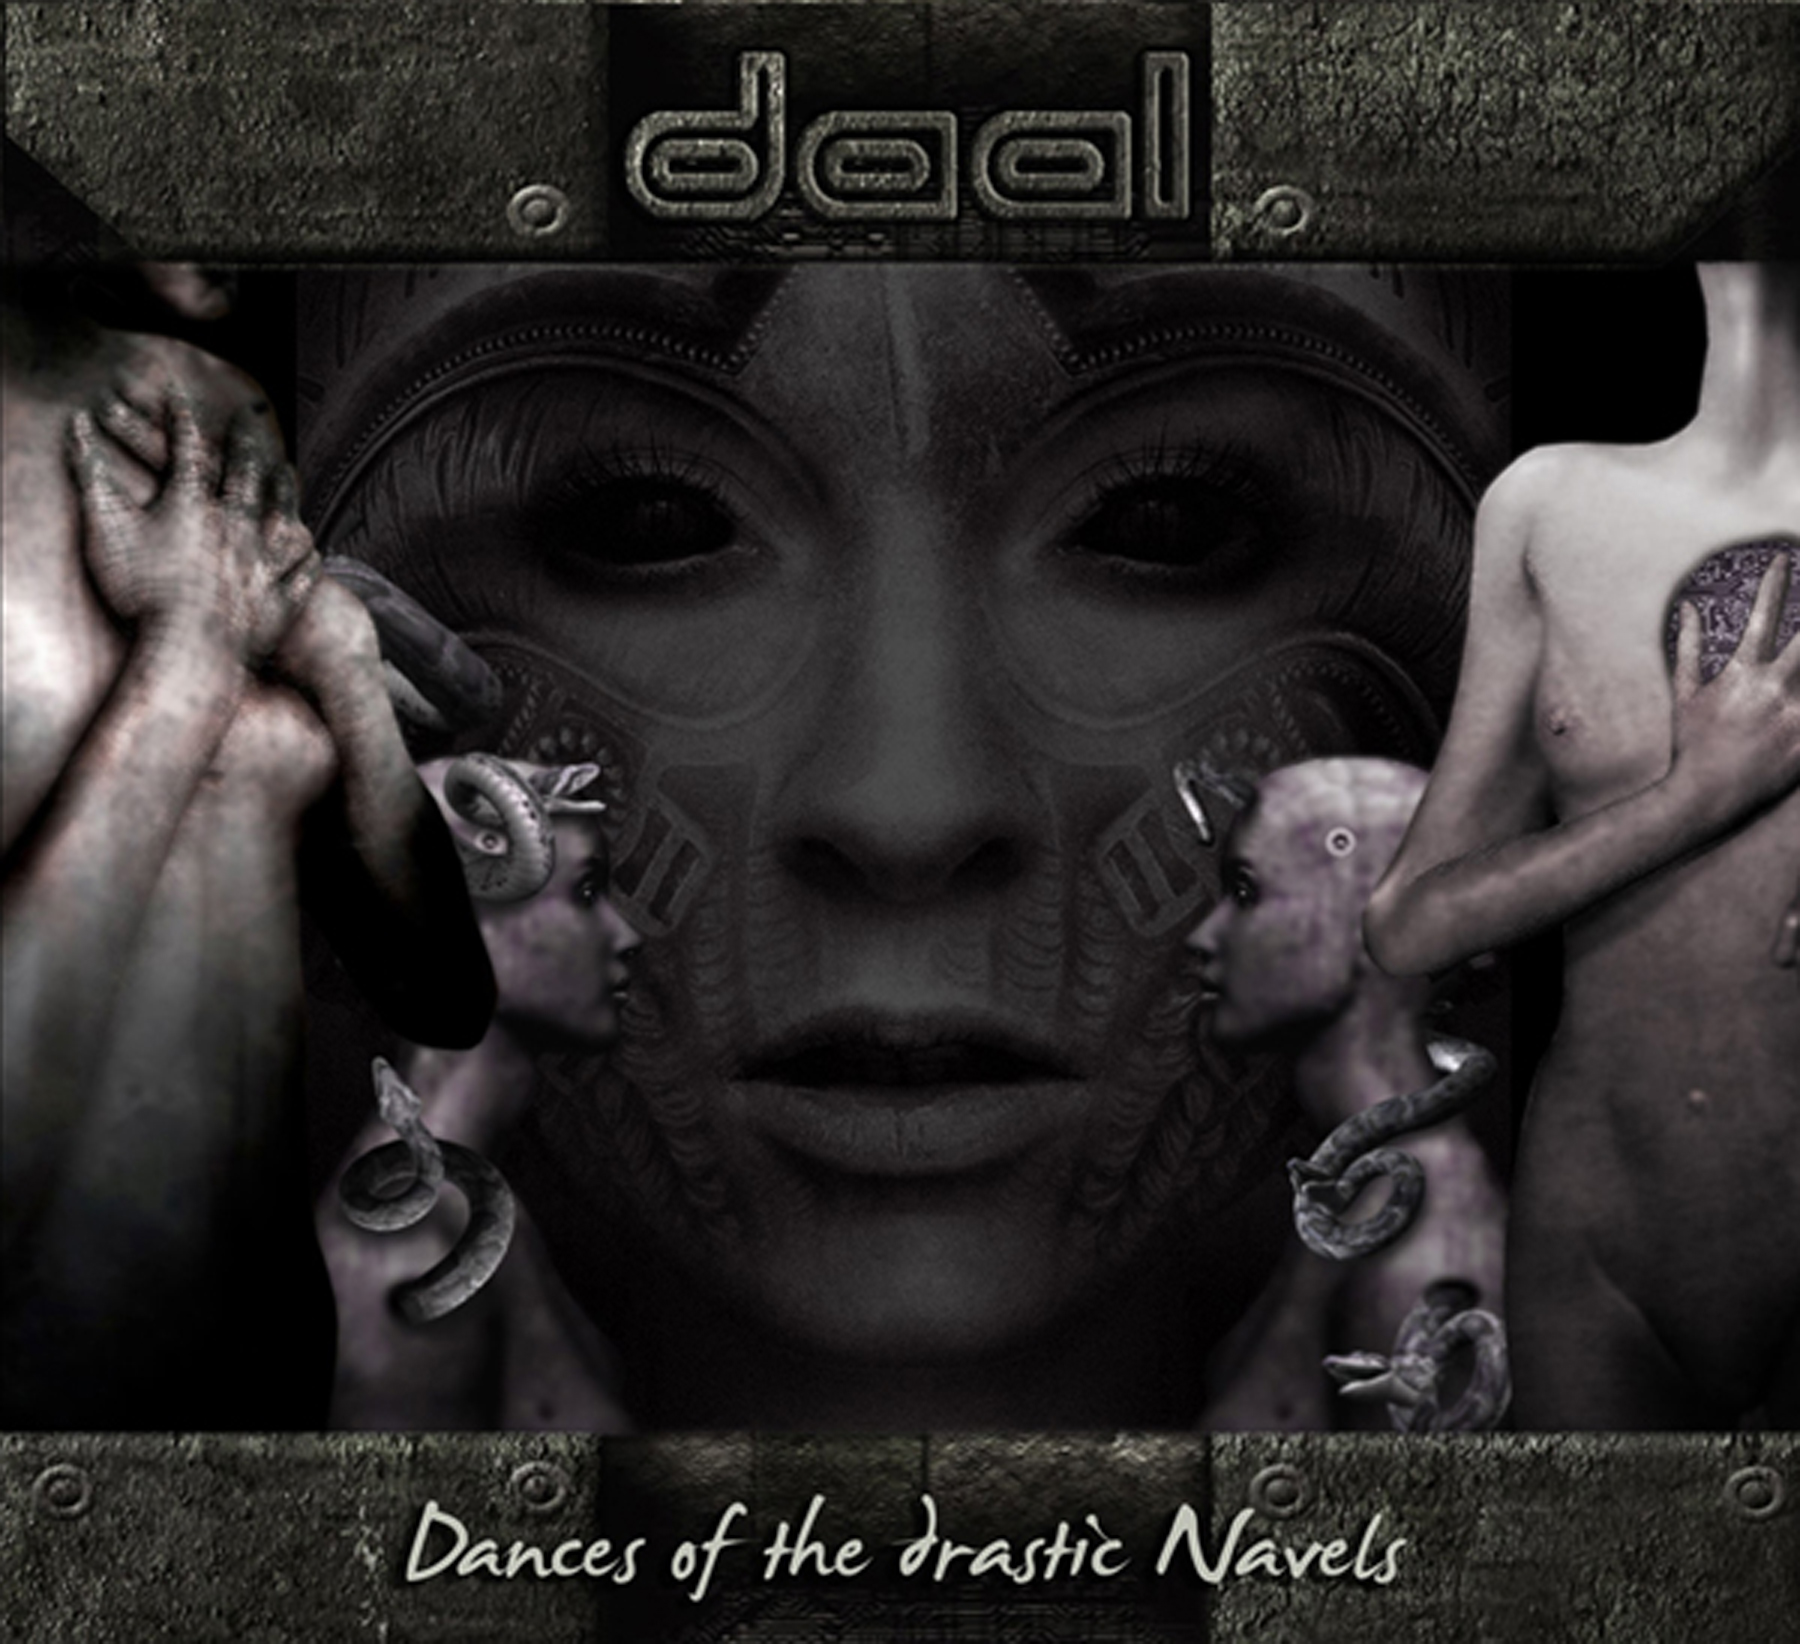 DAAL - Dances of the Drastic Navels CD Digipack